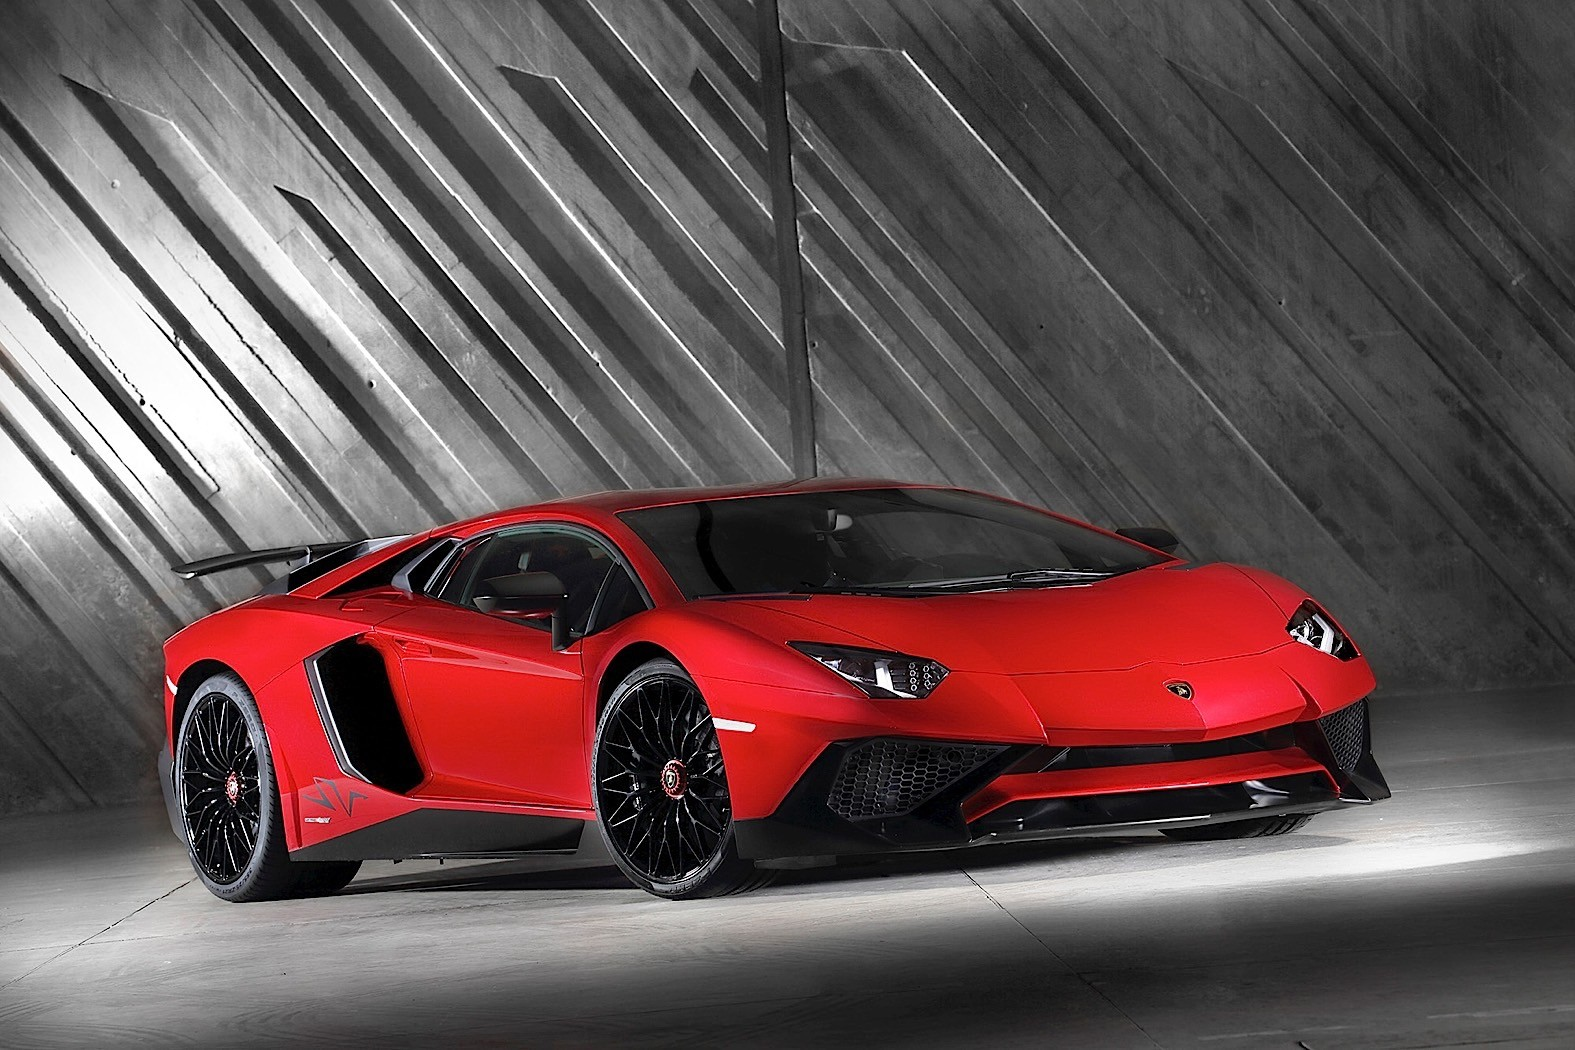 2017 Lamborghini Aventador Lp 750 4 Superveloce Review Autoevolution